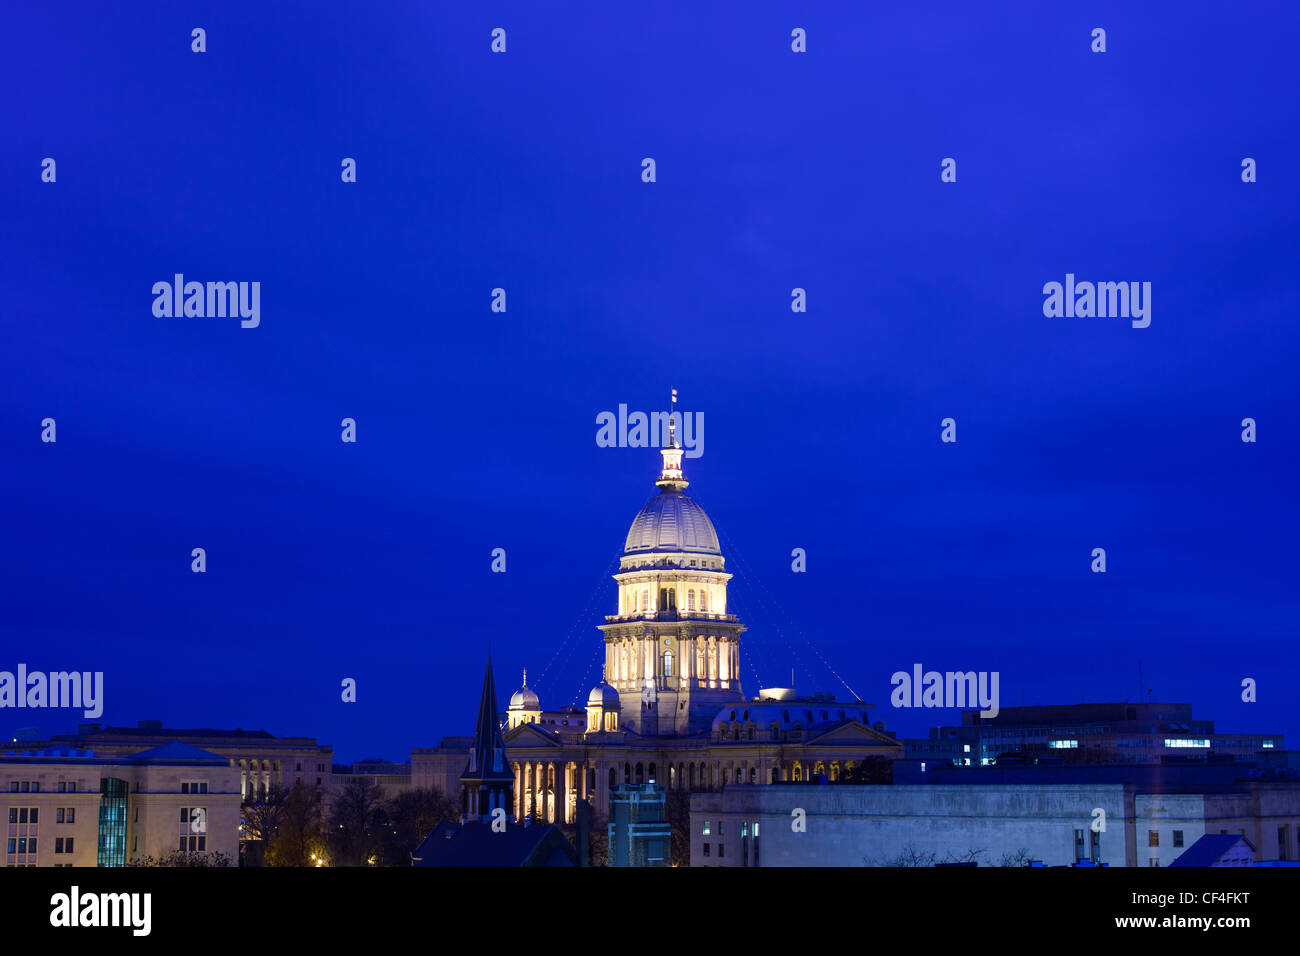 The Illinois State Capital building dome is lit up against a twilight blue sky in Springfield, IL. - Stock Image